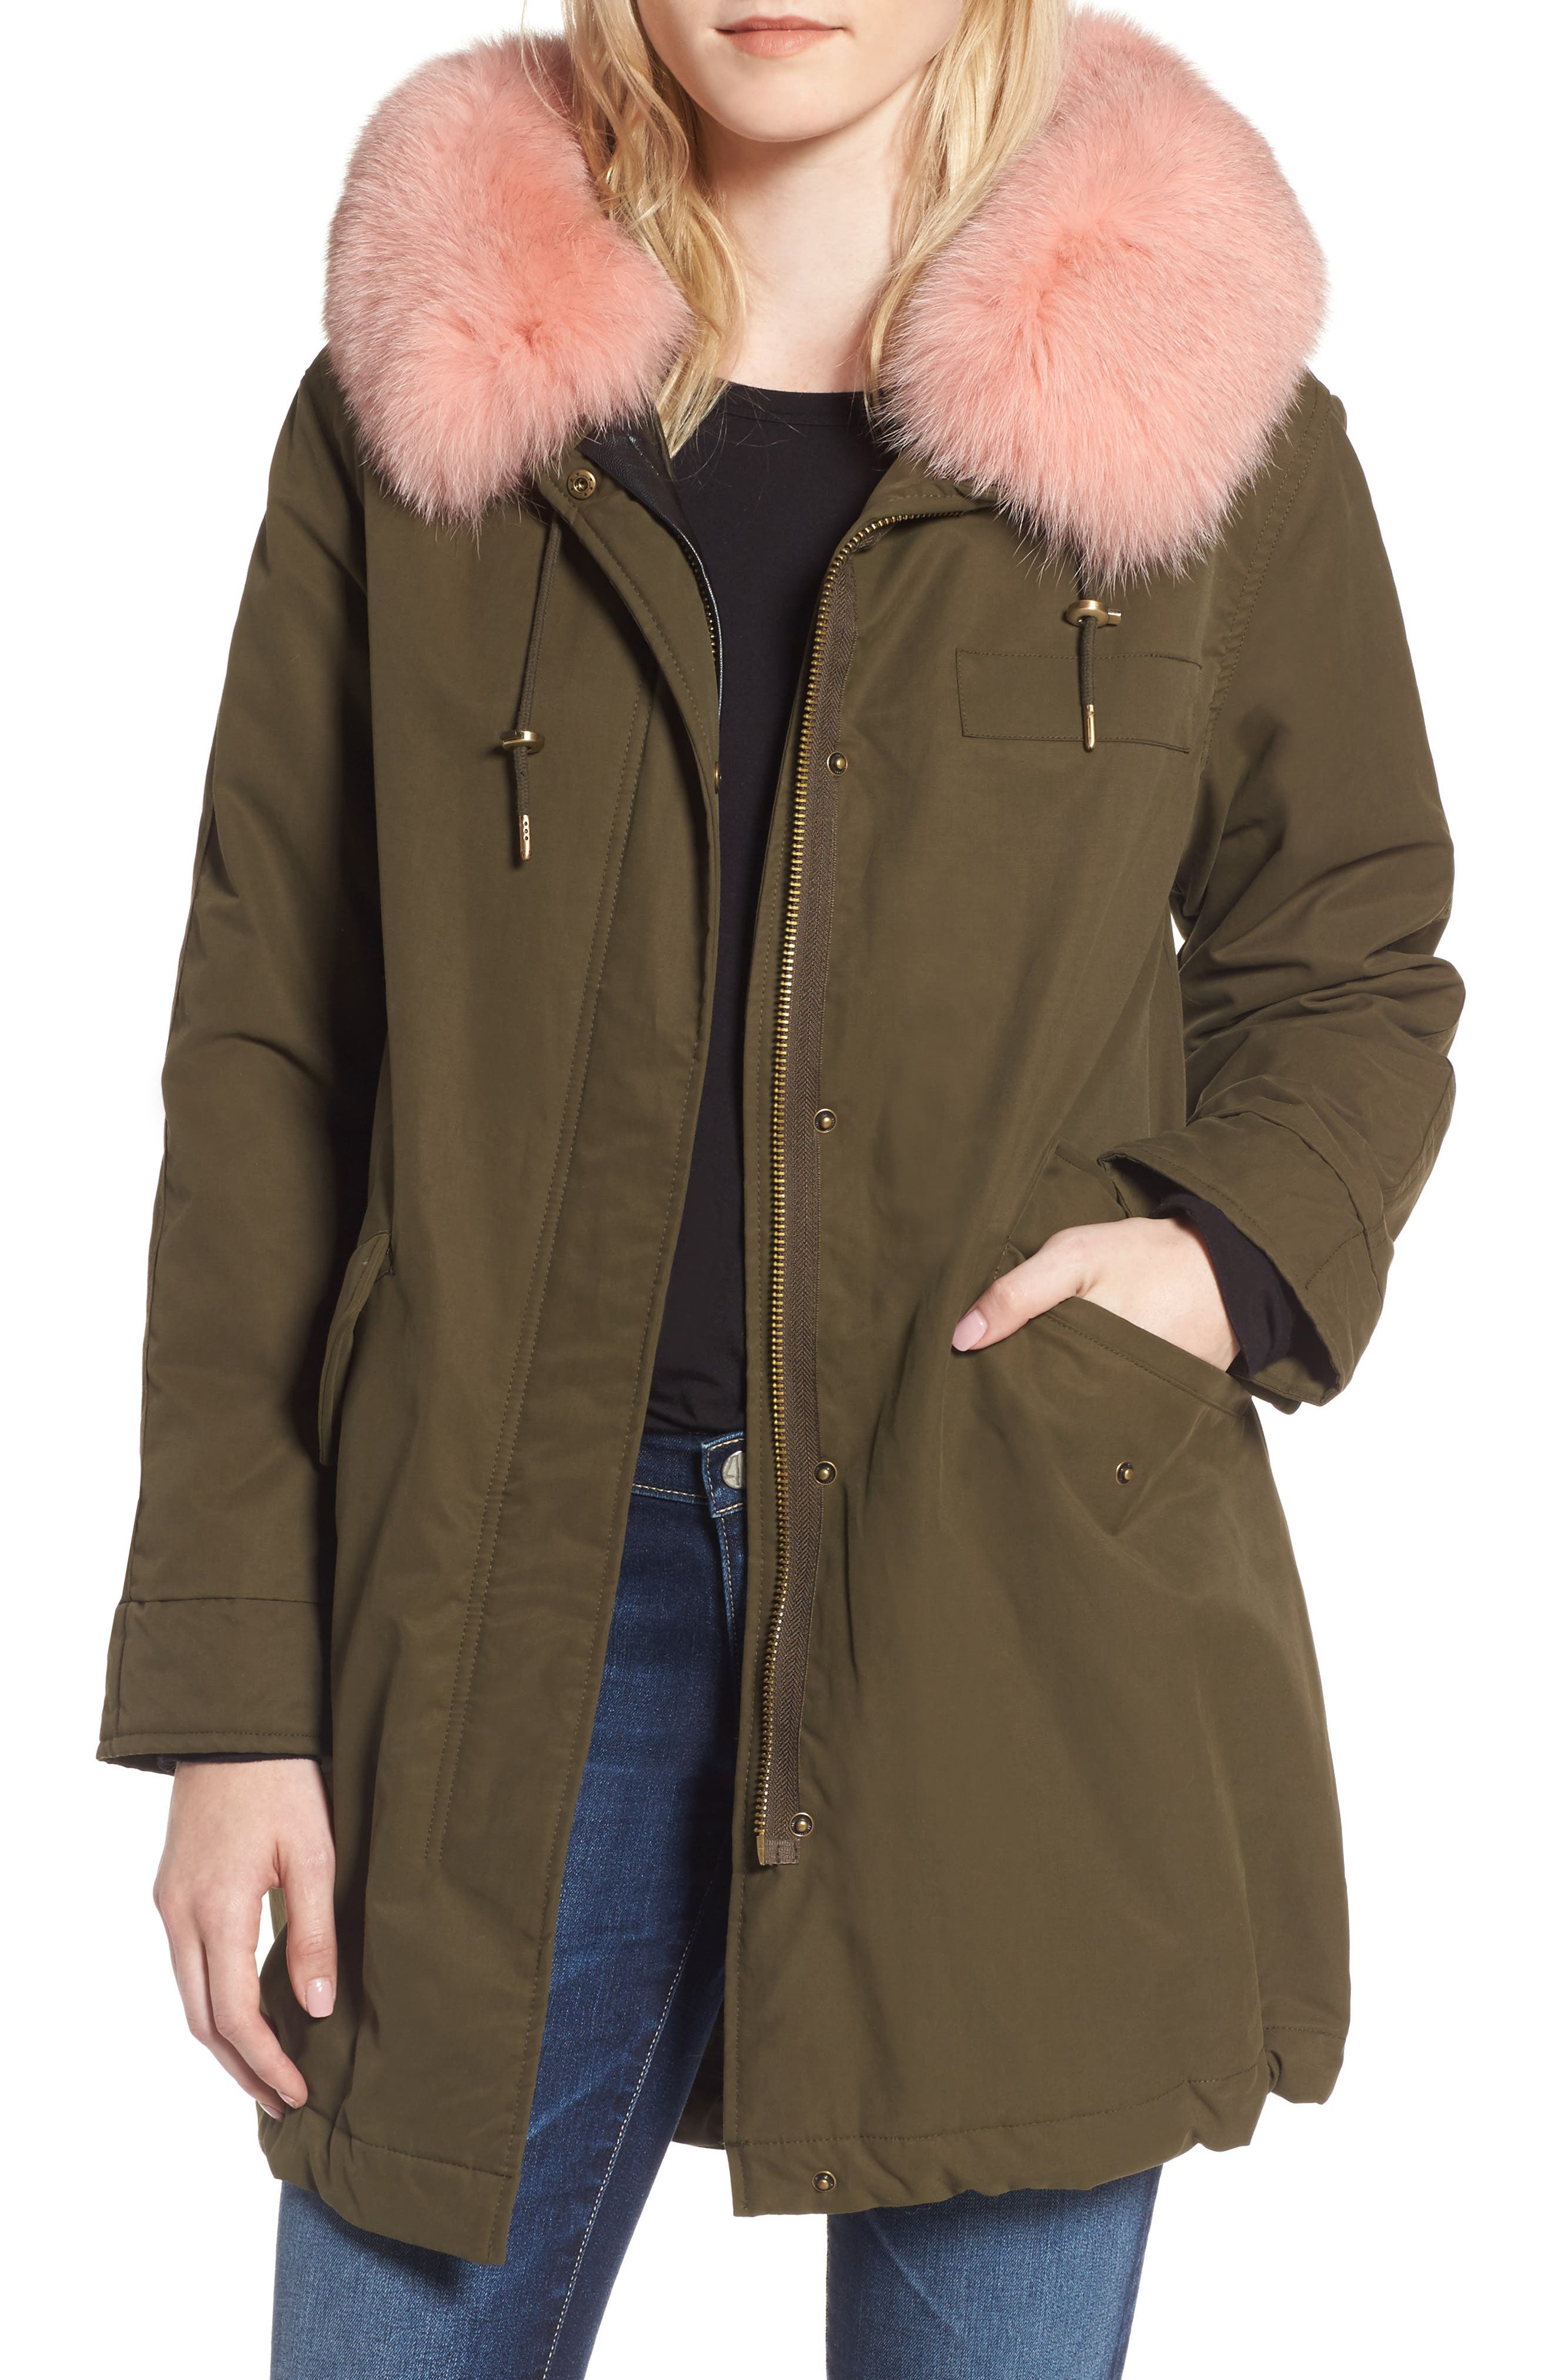 Main Image - 1 Madison Hooded Cotton Parka with Genuine Fox Fur Trim